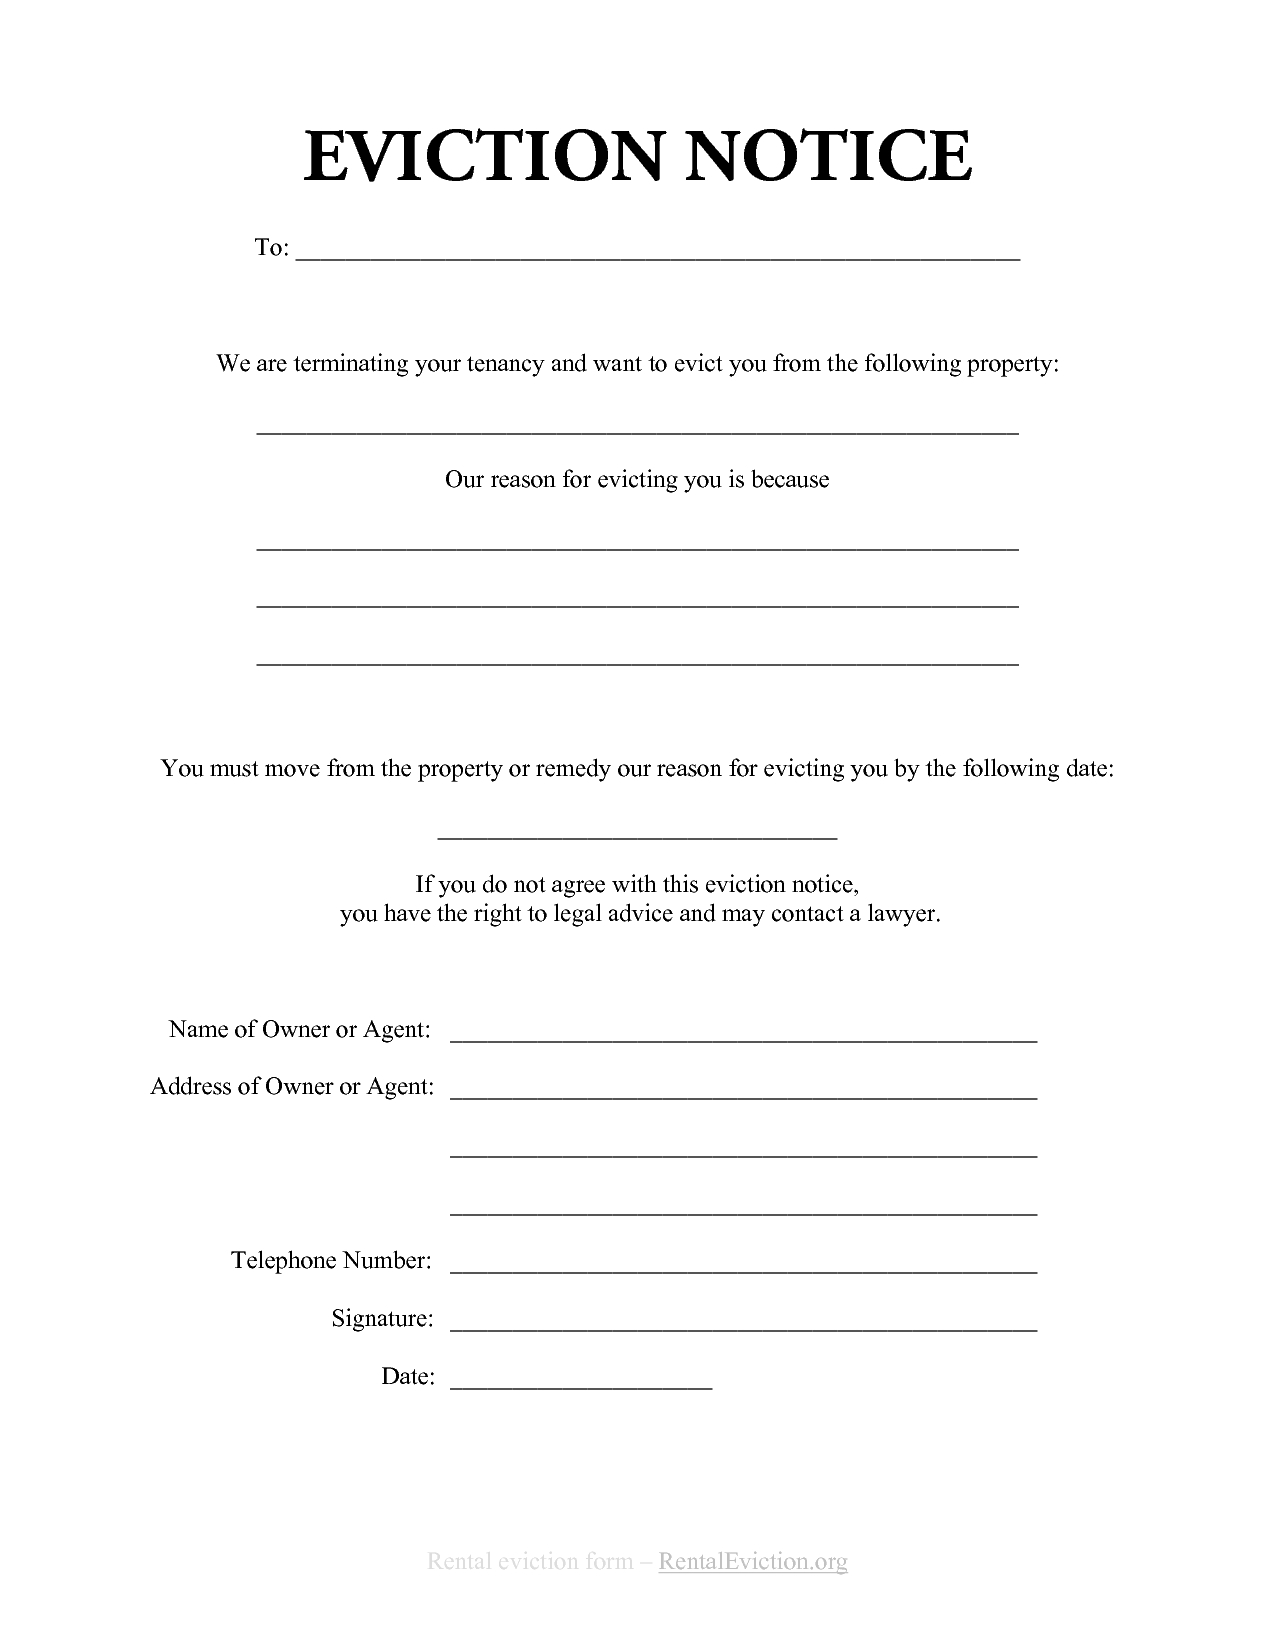 Eviction Letter Template - Free Print Out Eviction Notices Free Rental Eviction Notice